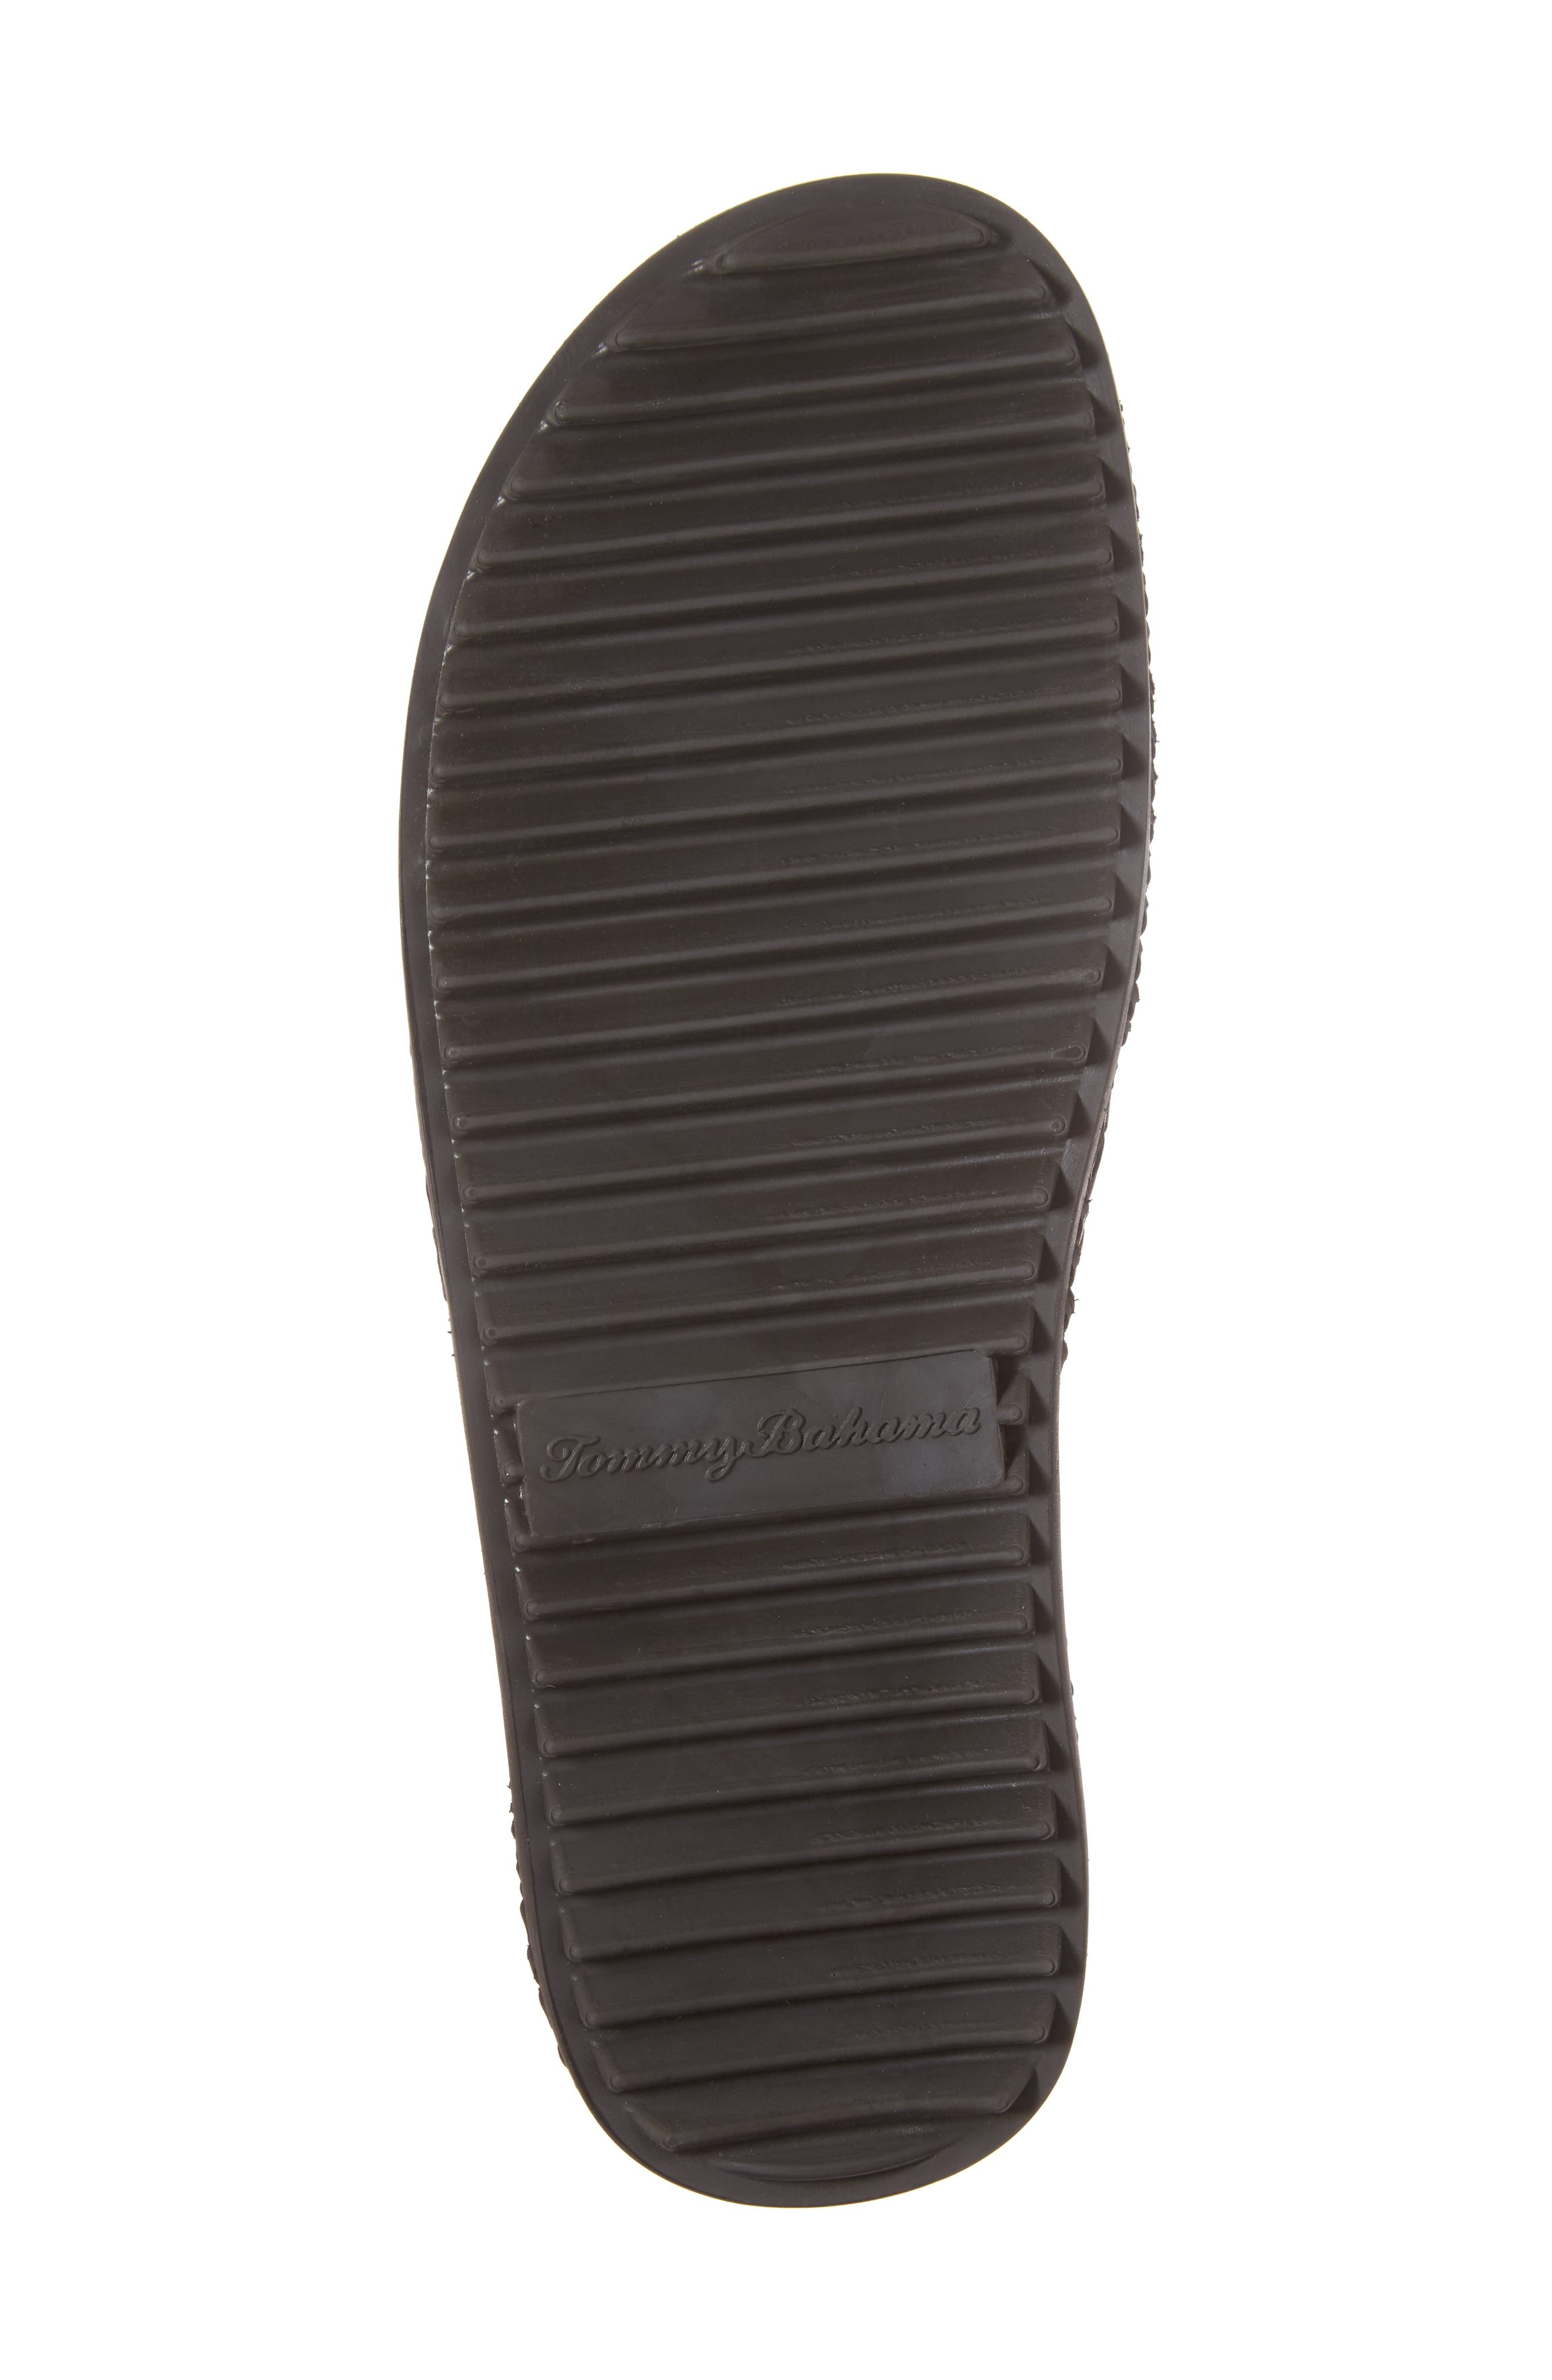 Shore Crest Woven Slide Sandal,                             Alternate thumbnail 6, color,                             Dark Brown